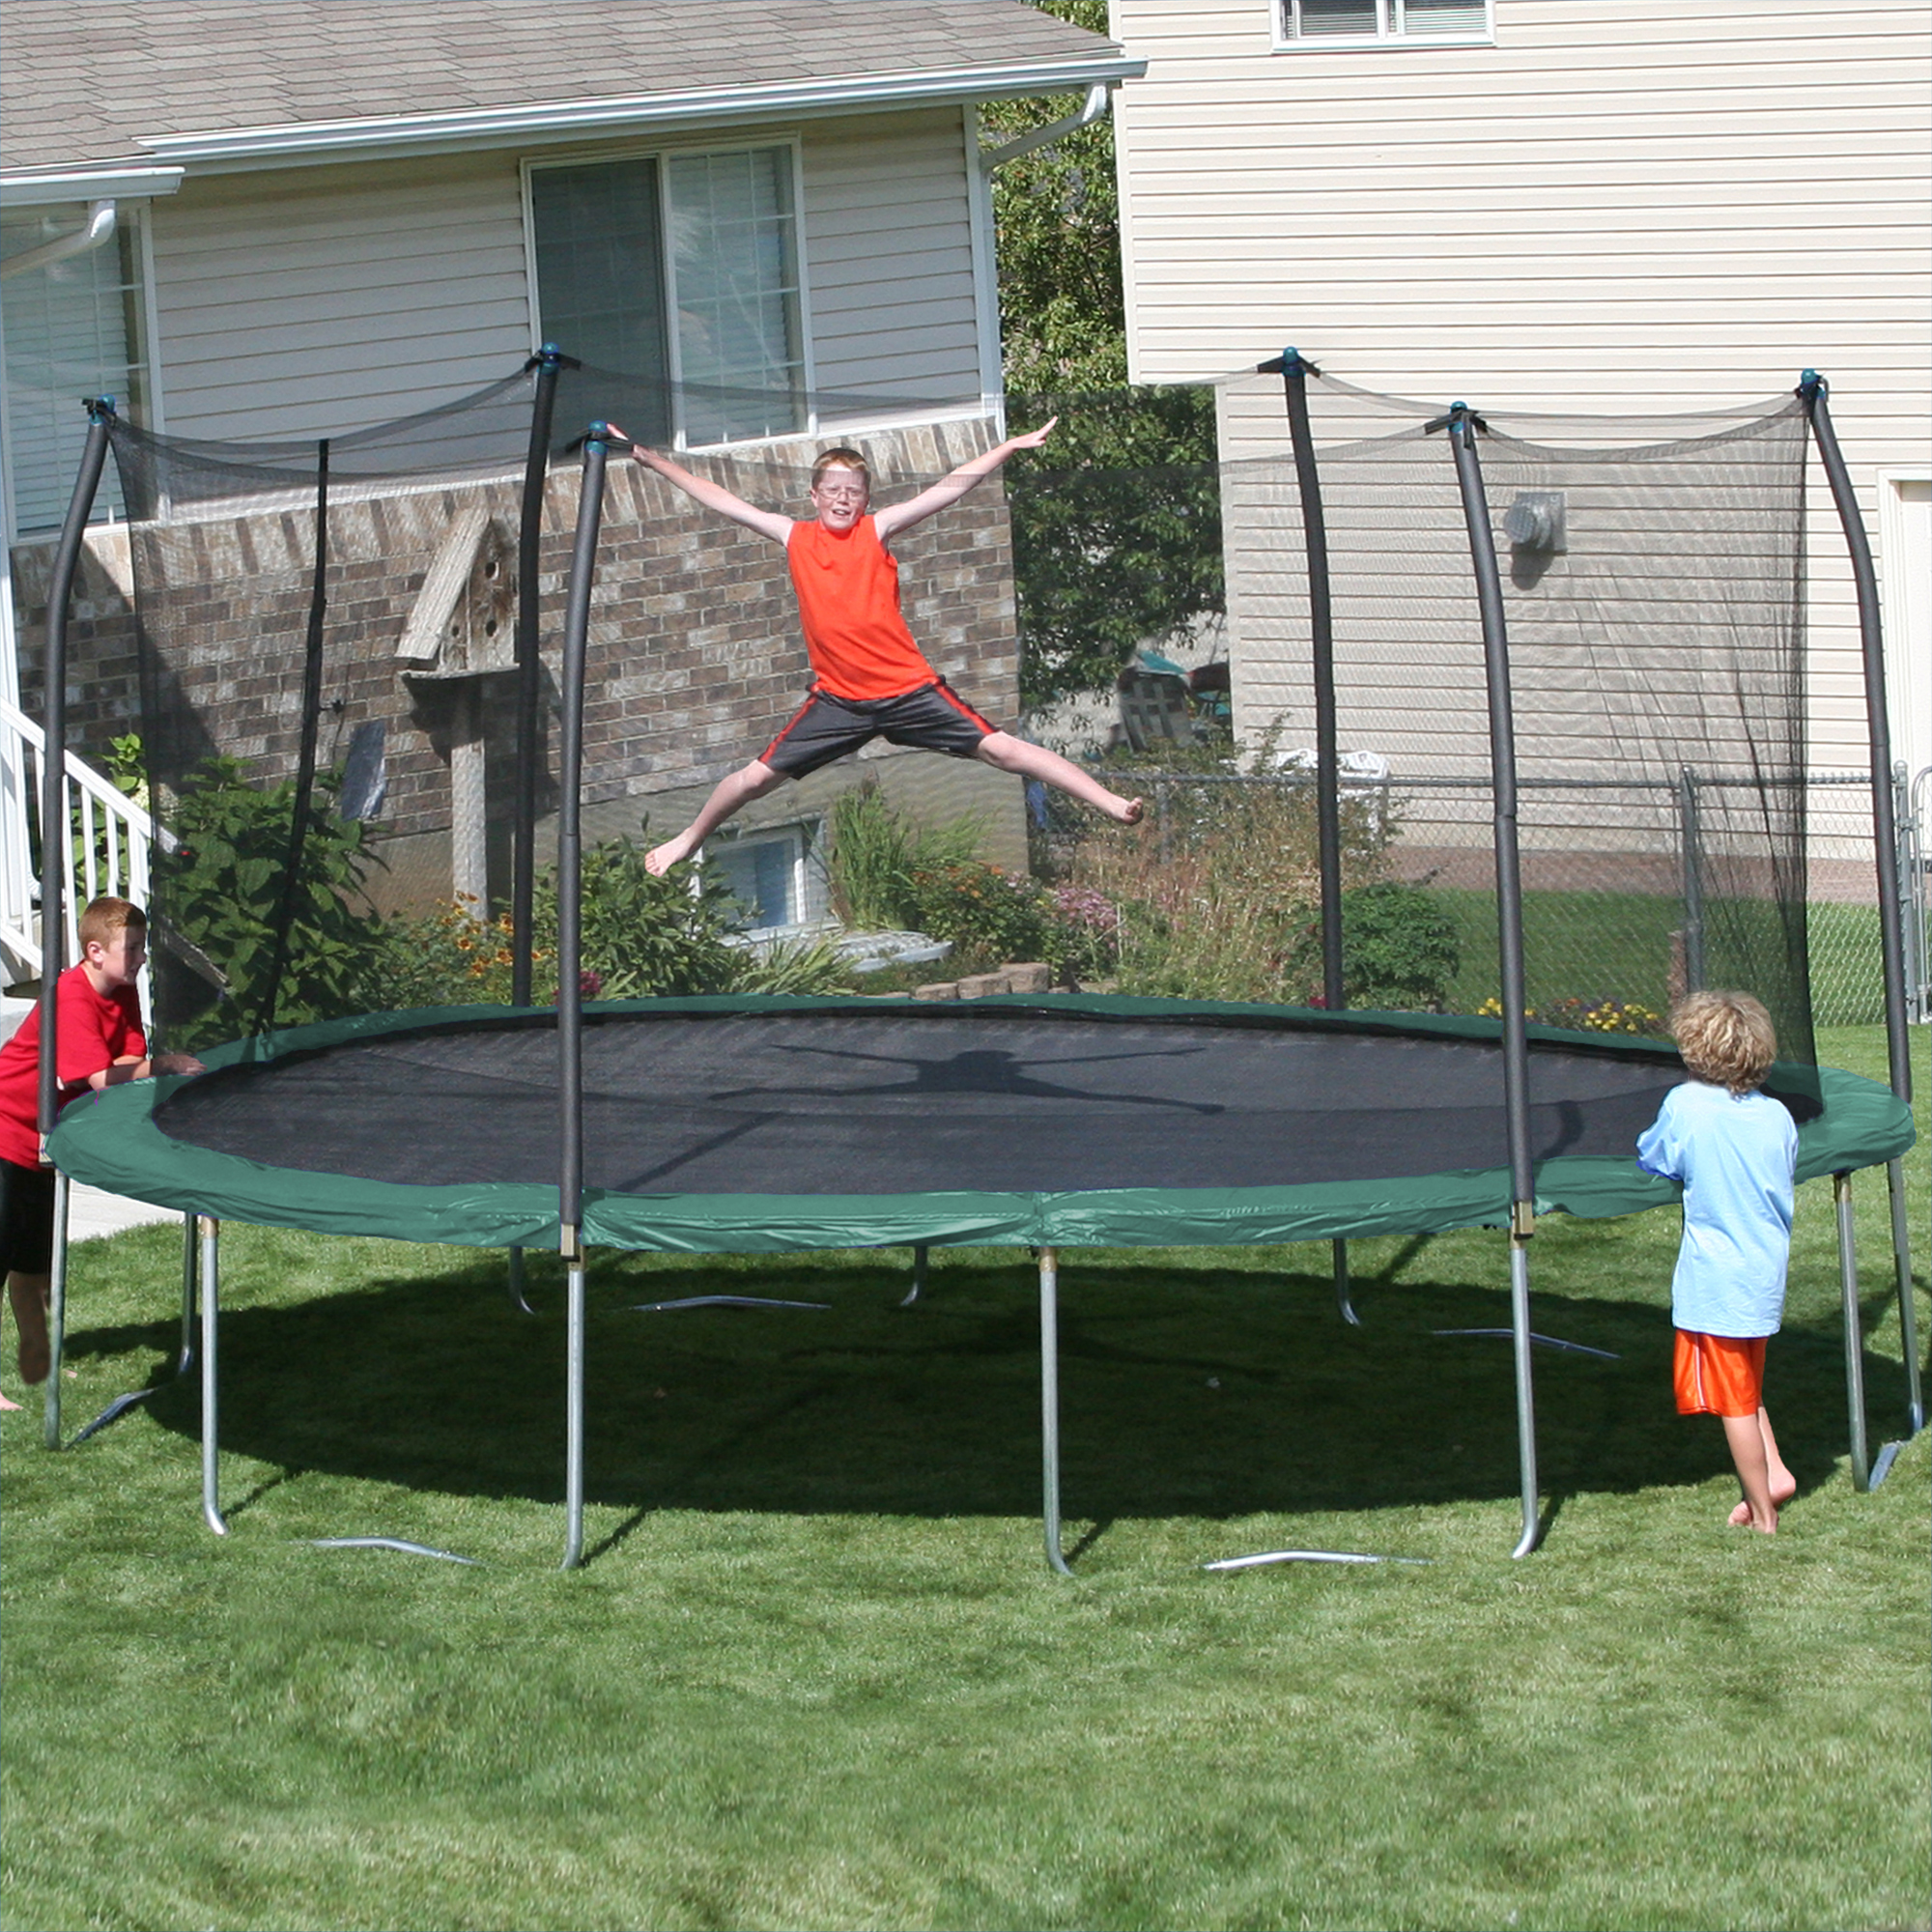 New Huge 15 X 17 Oval Trampoline Safety Net Enclosure: Myspace